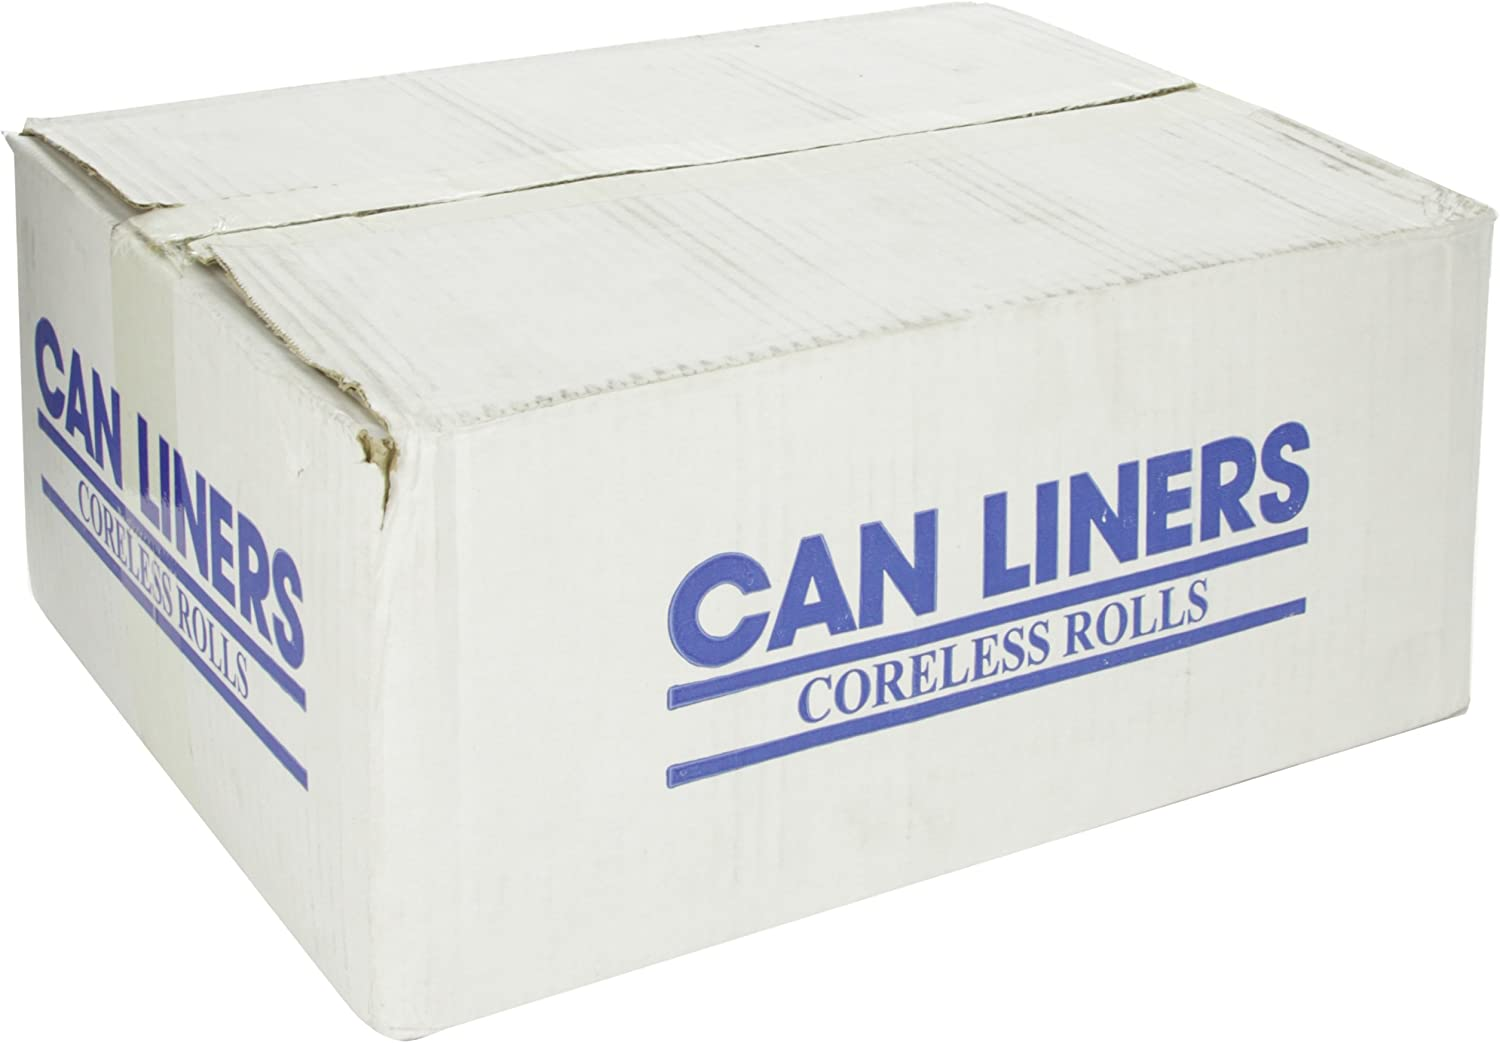 Spectrum CP386017N Max 61% OFF HDPE Institutional List price Trash 60 Liner Gallon Can